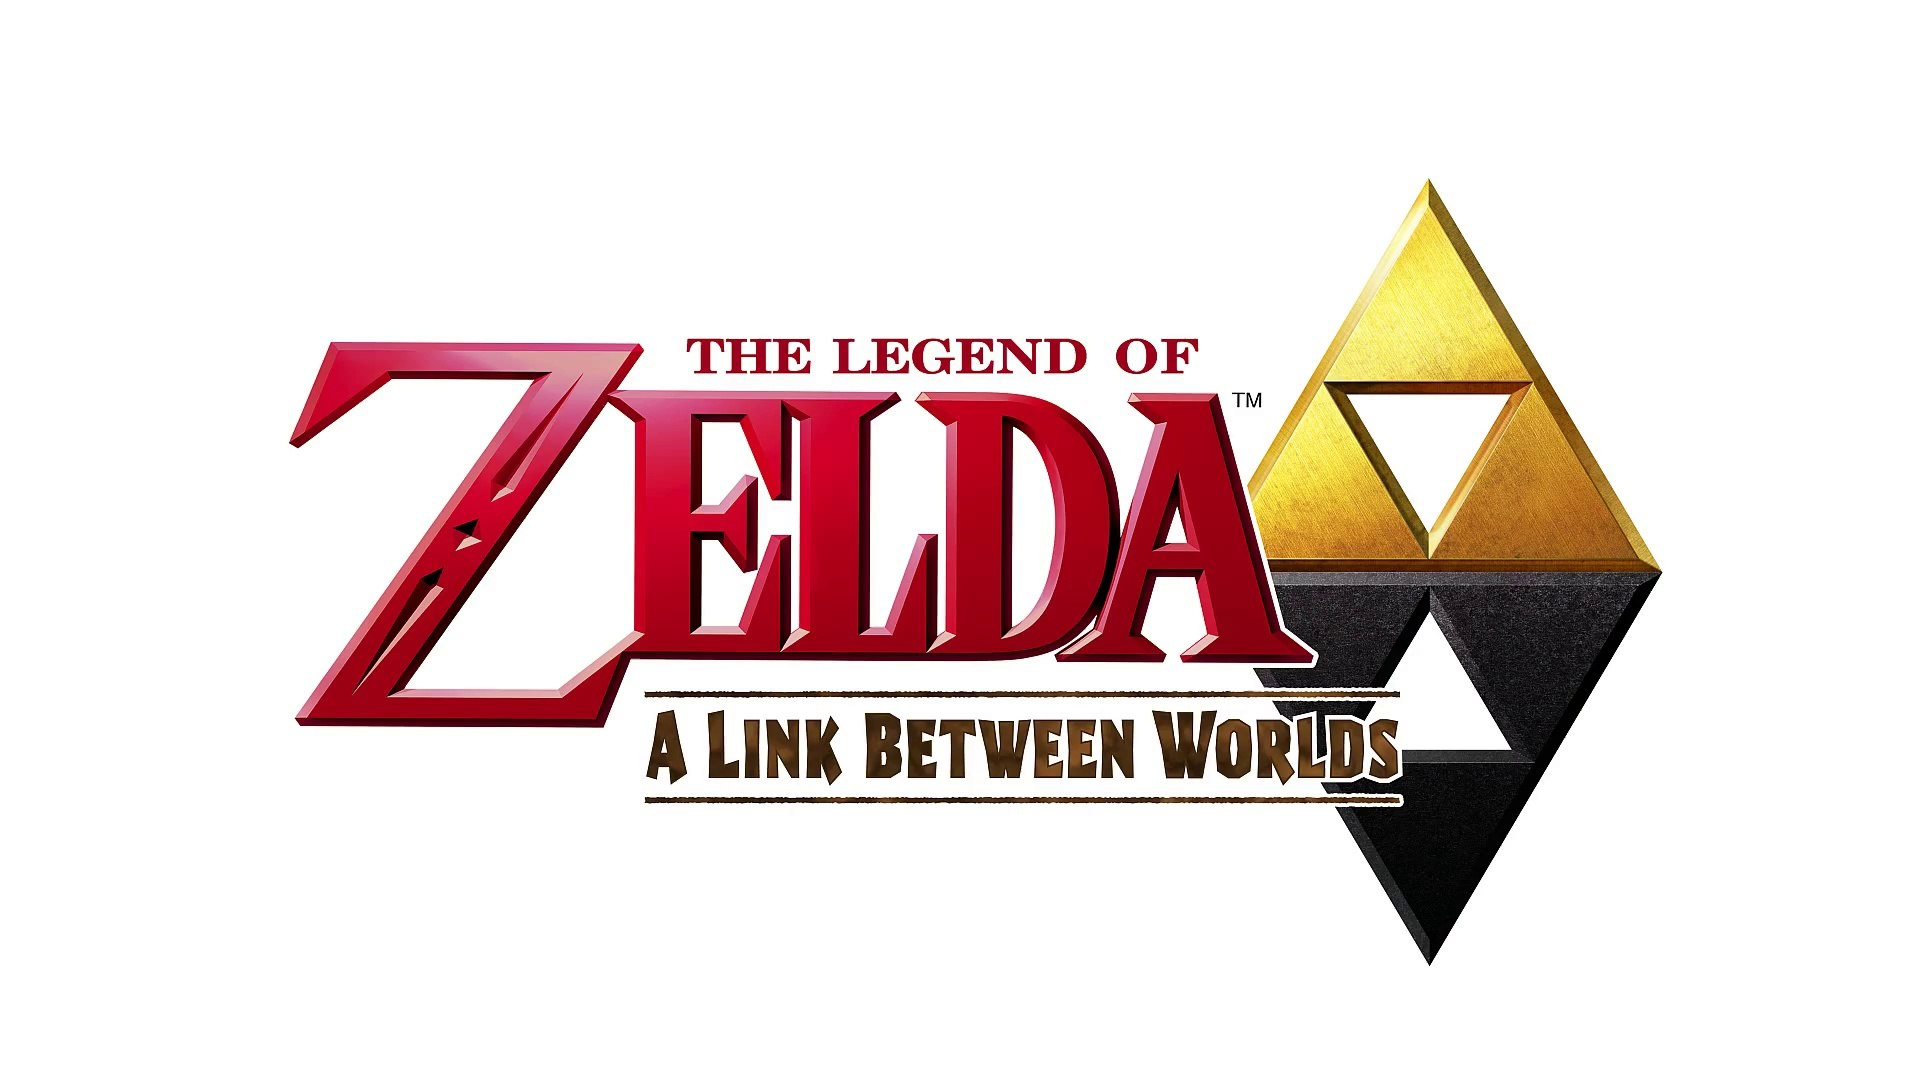 Hyrule Field 2 The Legend Of Zelda A Link Between Worlds Music Extended 1080p Video Dailymotion